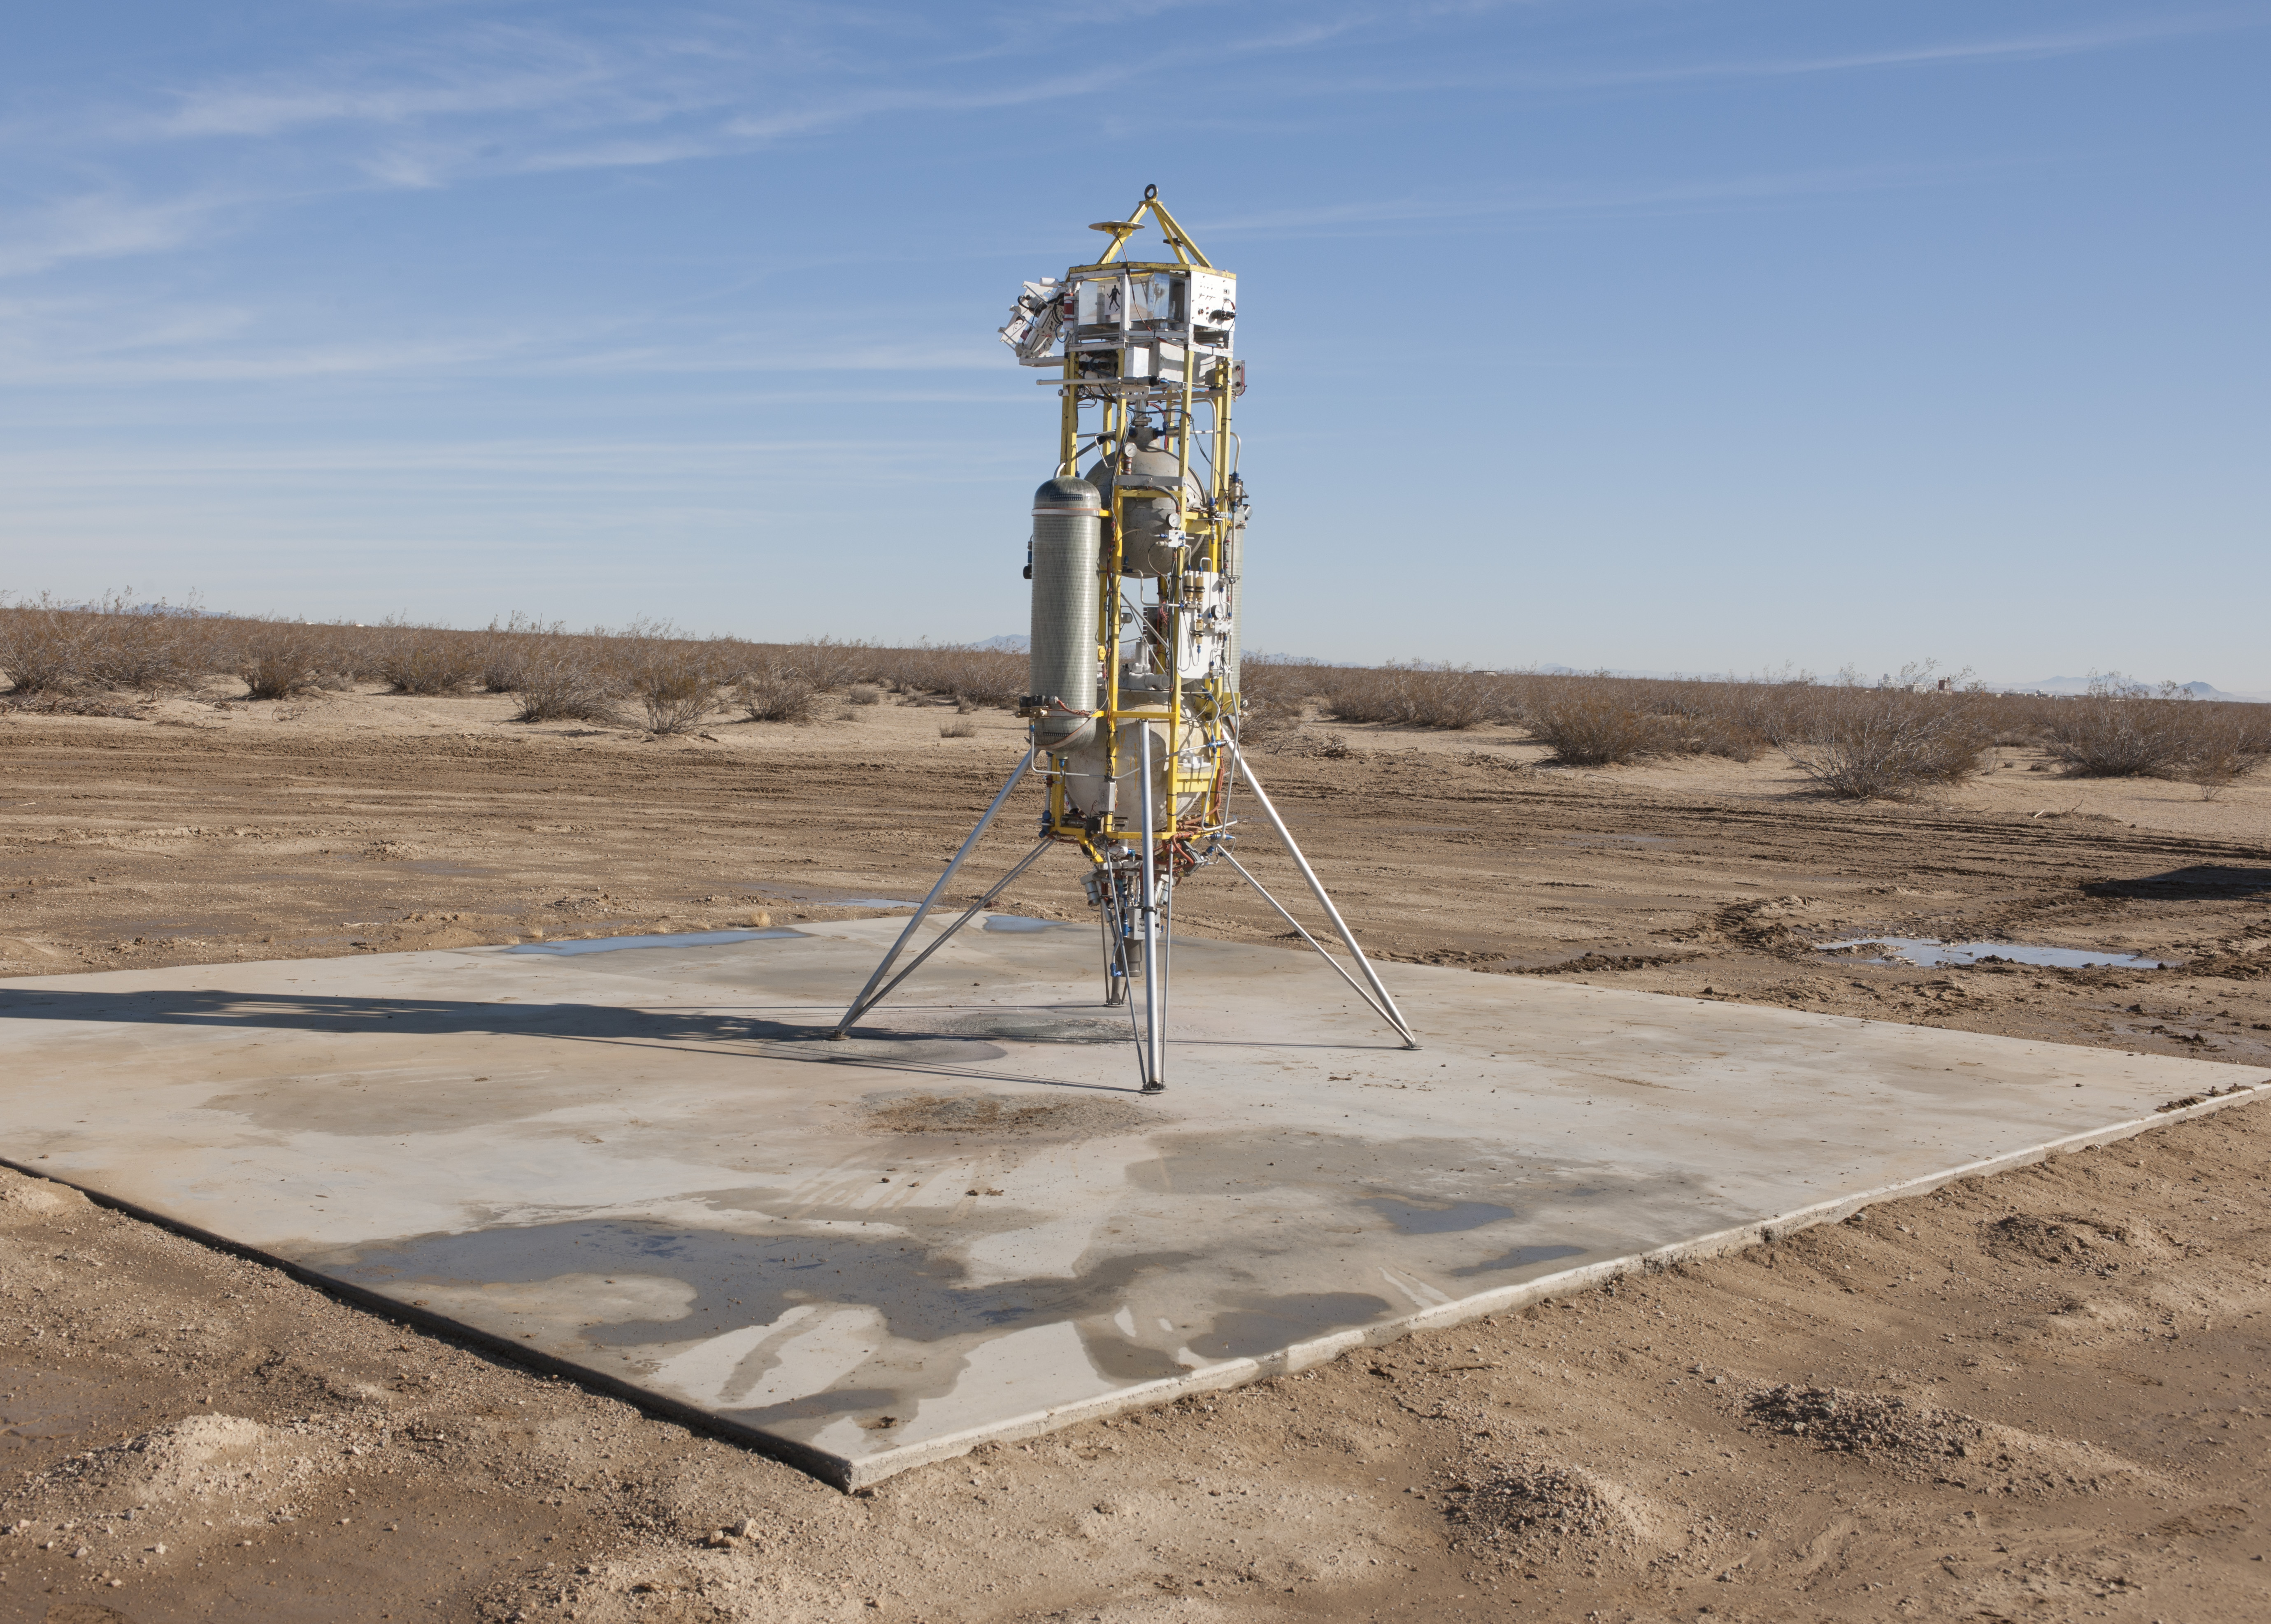 Successful Test Flights for Mars Landing Technology | NASA